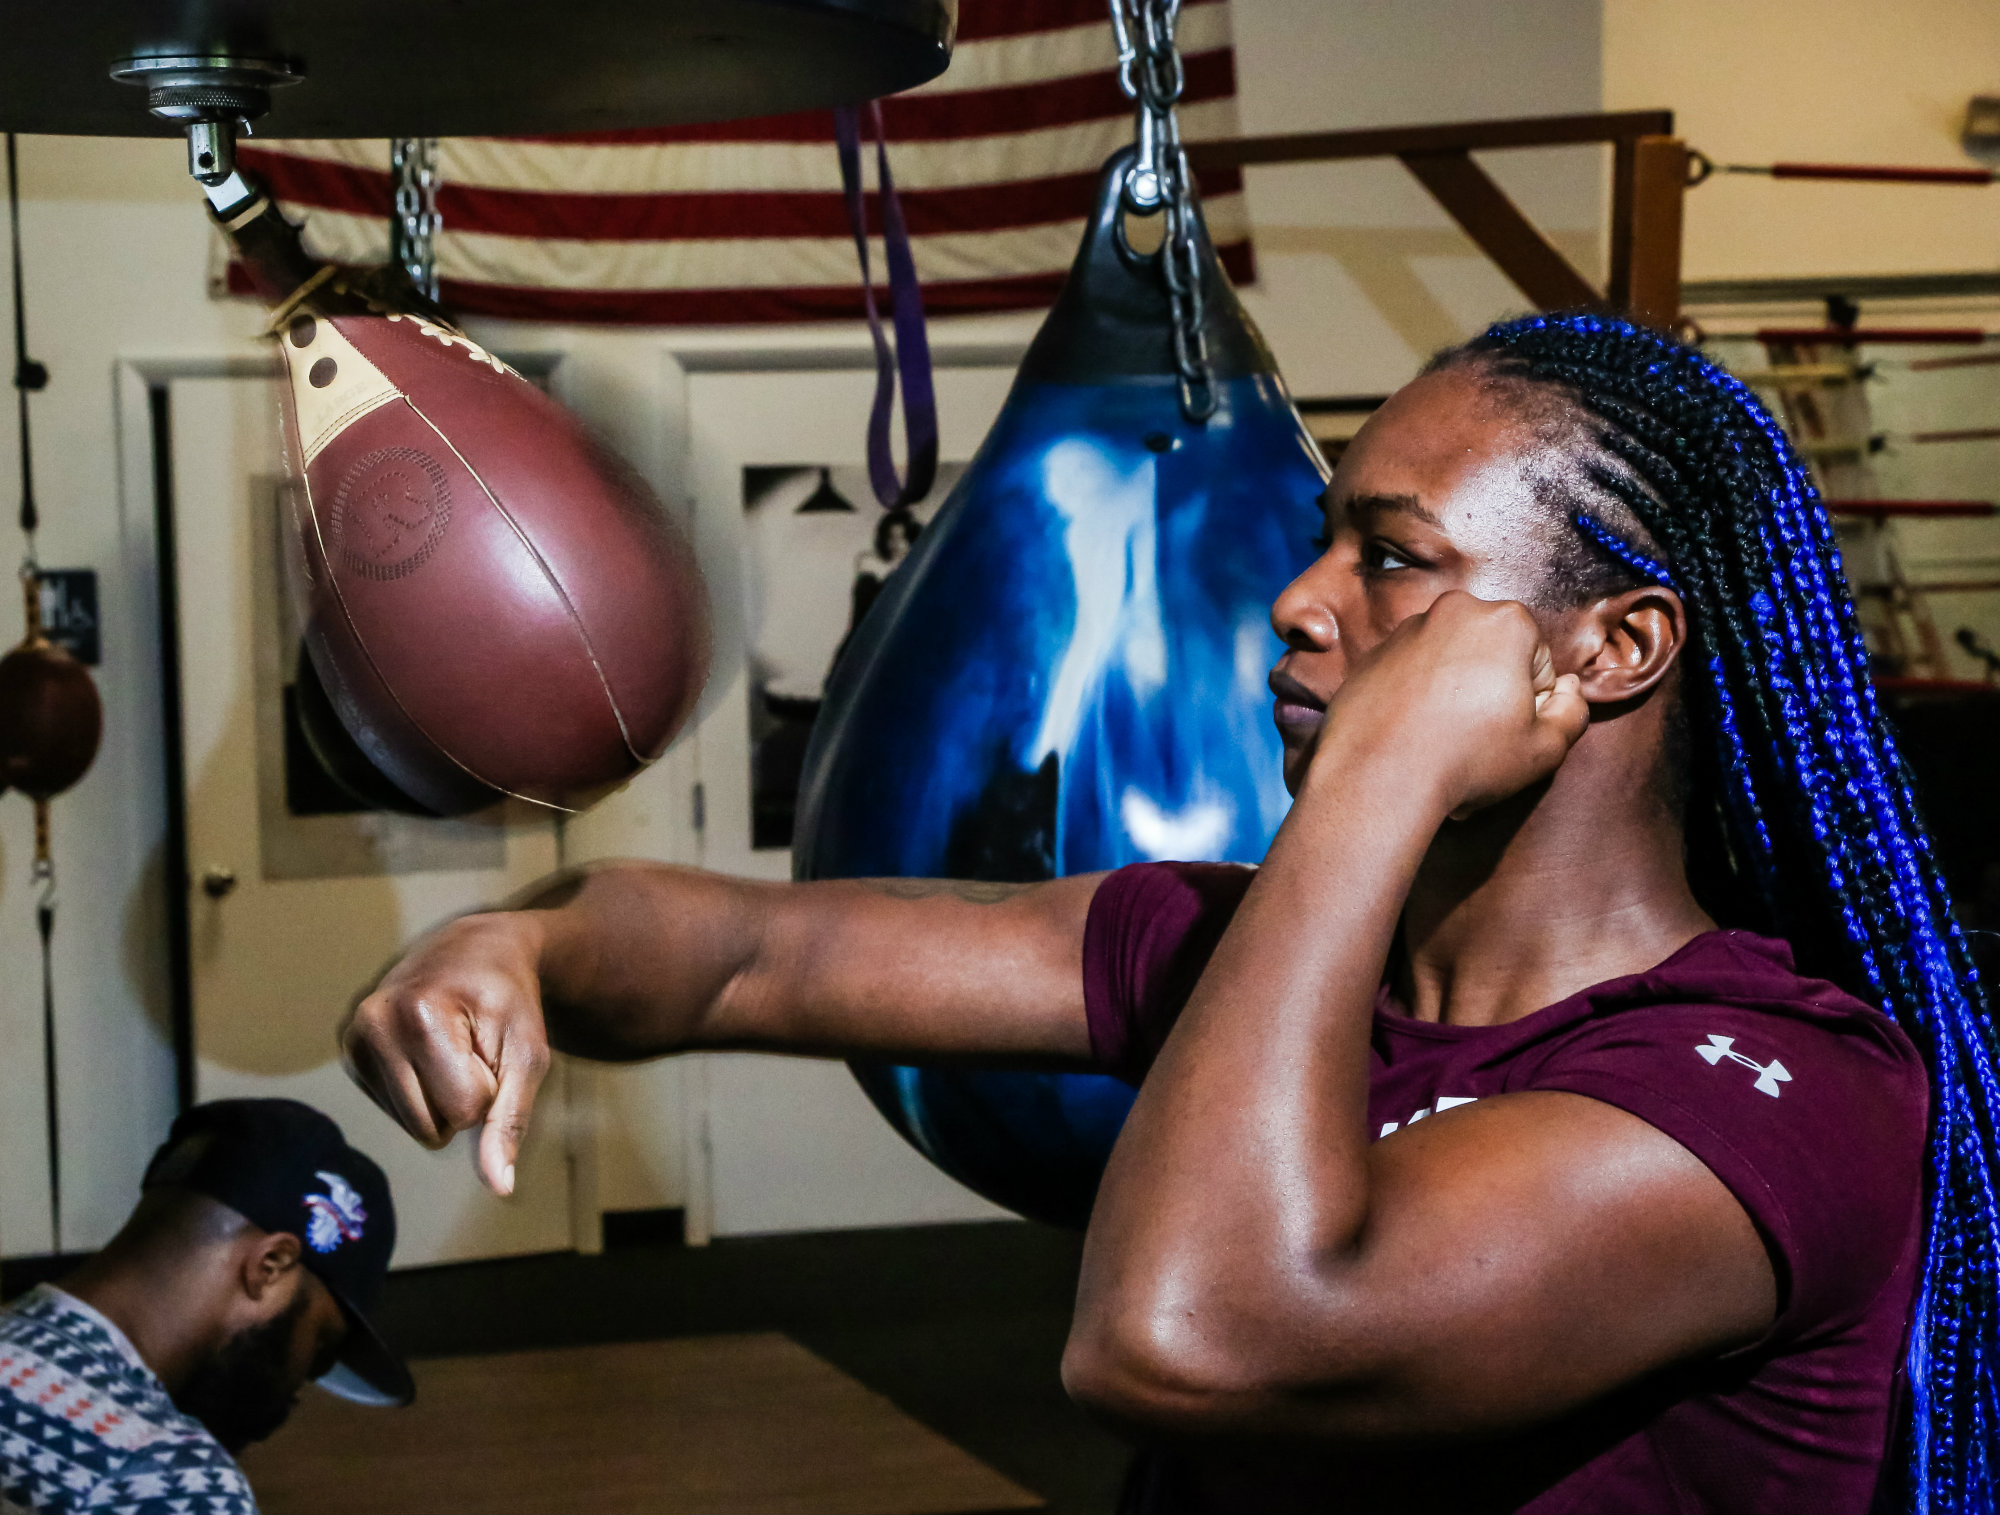 claressa shields speedbag - Is Claressa Shields-Christina Hammer the biggest fight in women's boxing history?